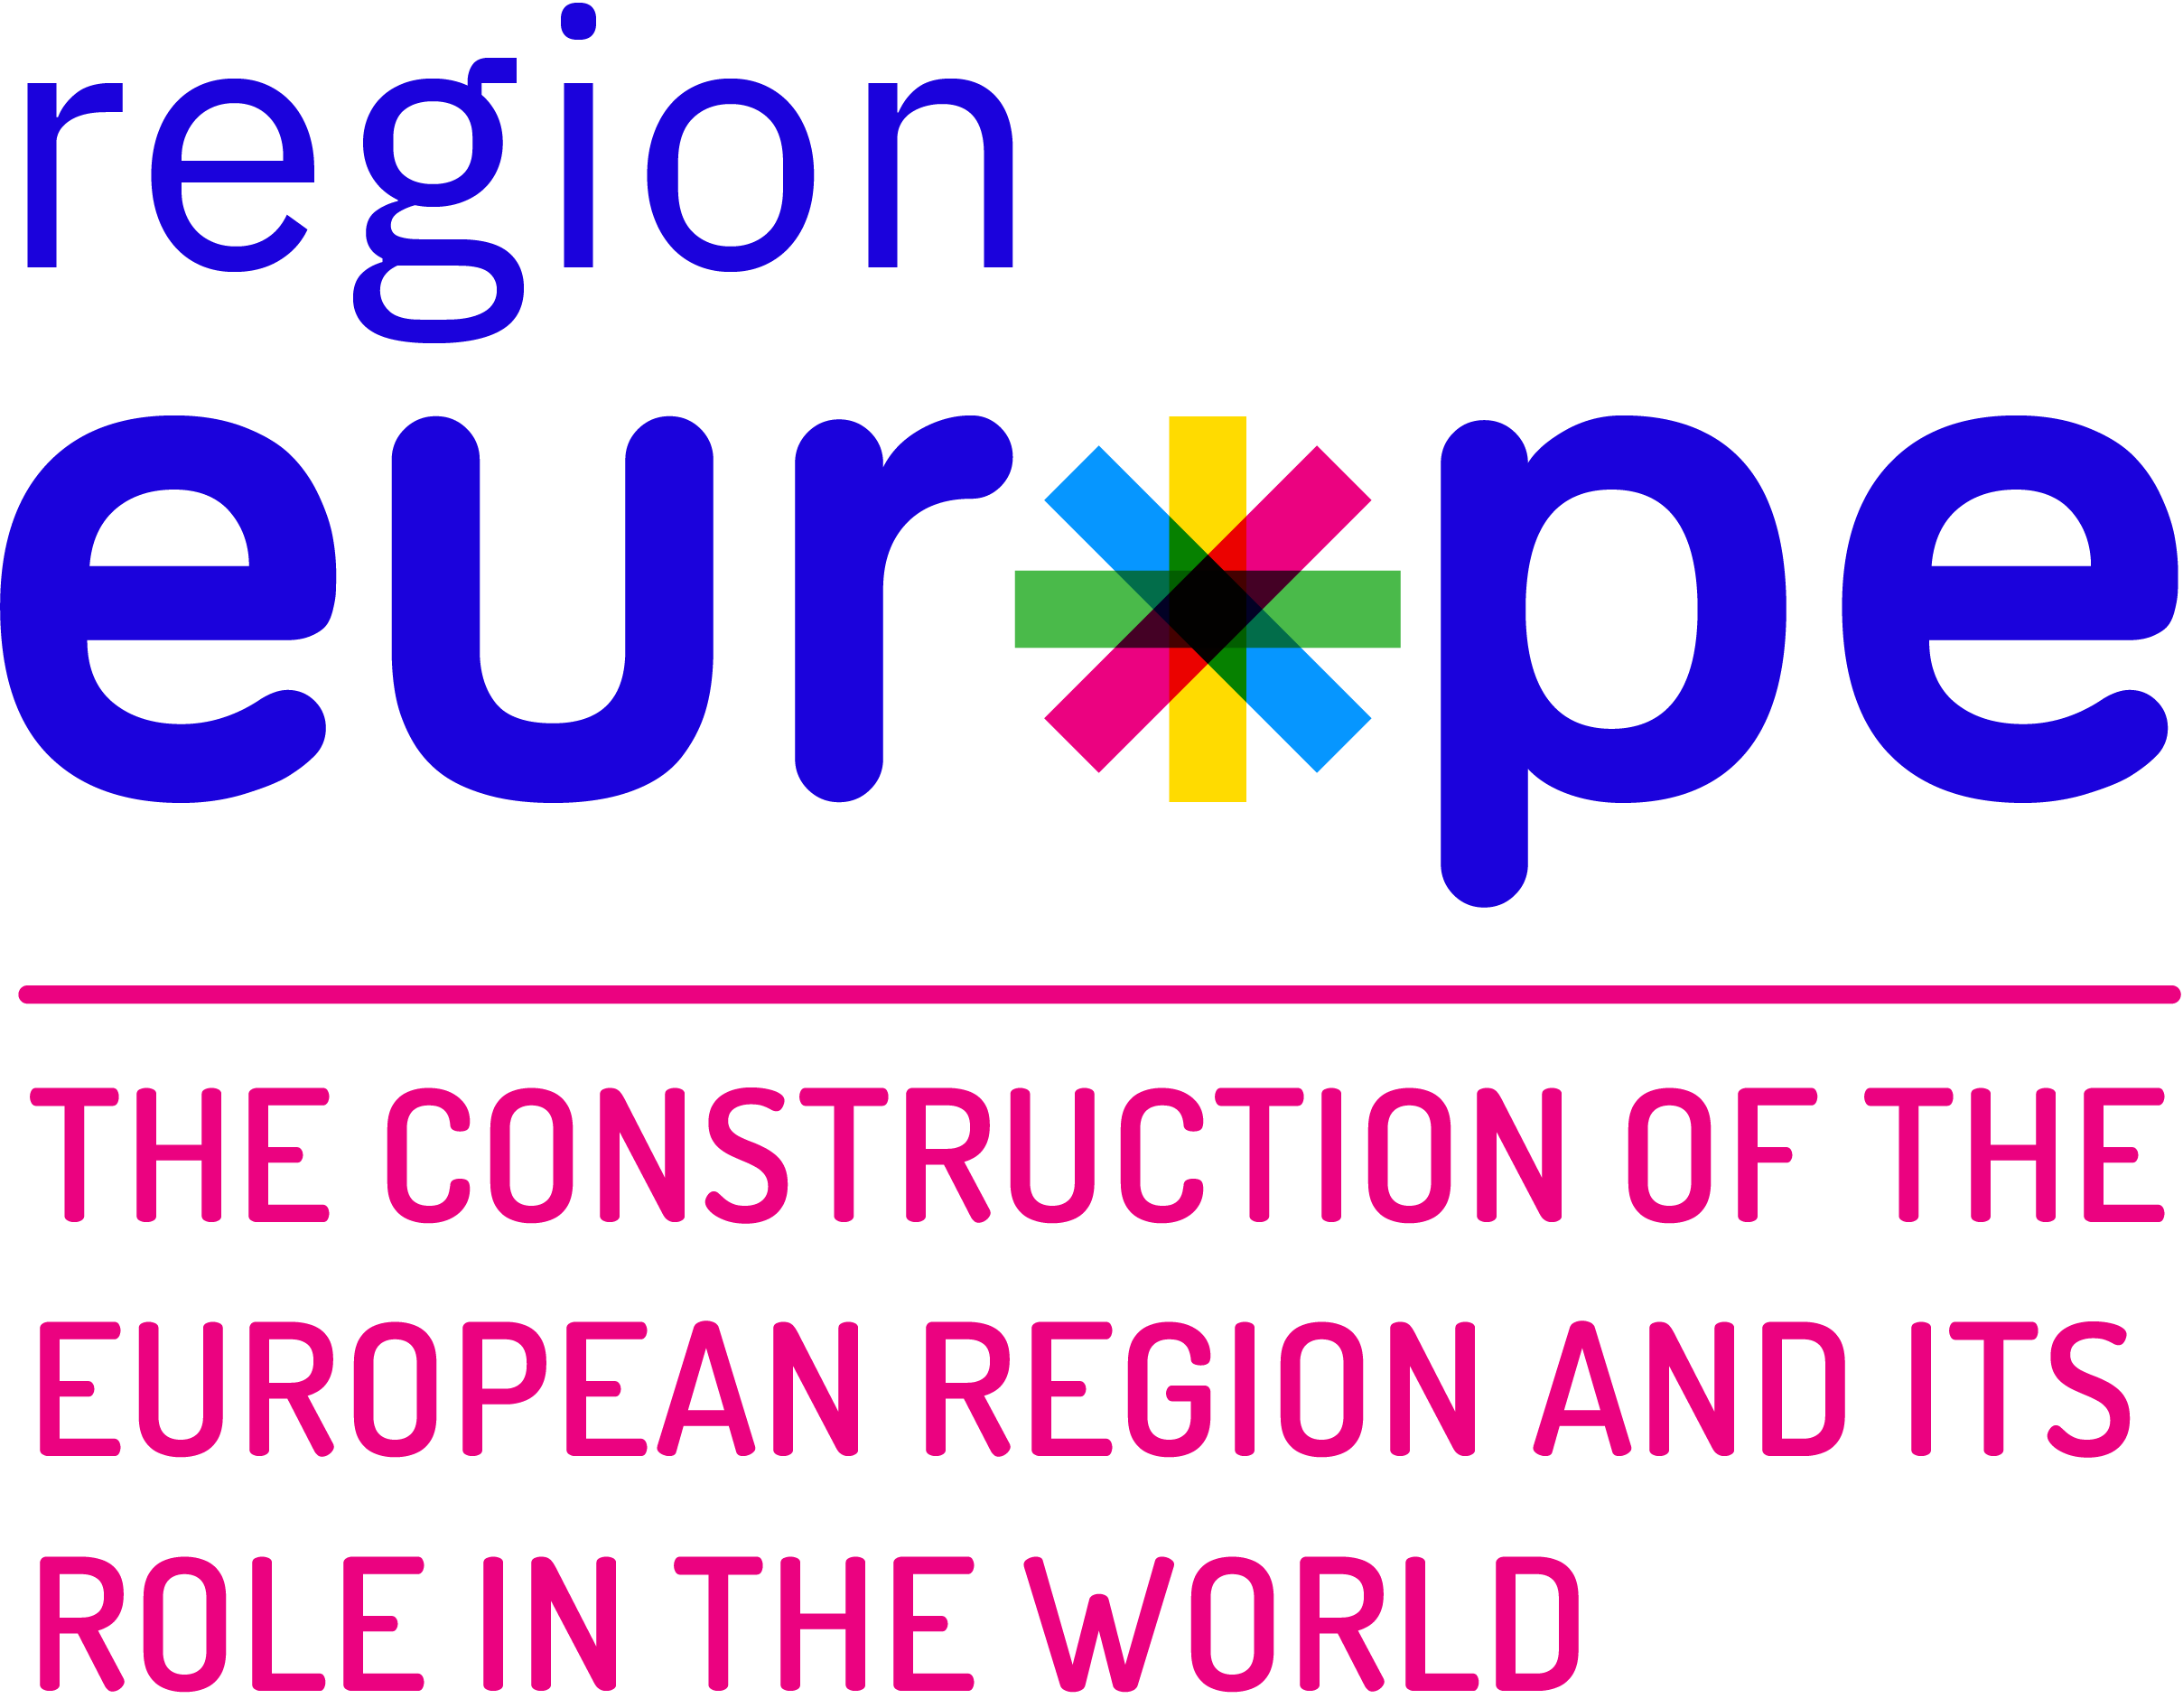 Region Europe | The Construction of the European Region and its Role in the World